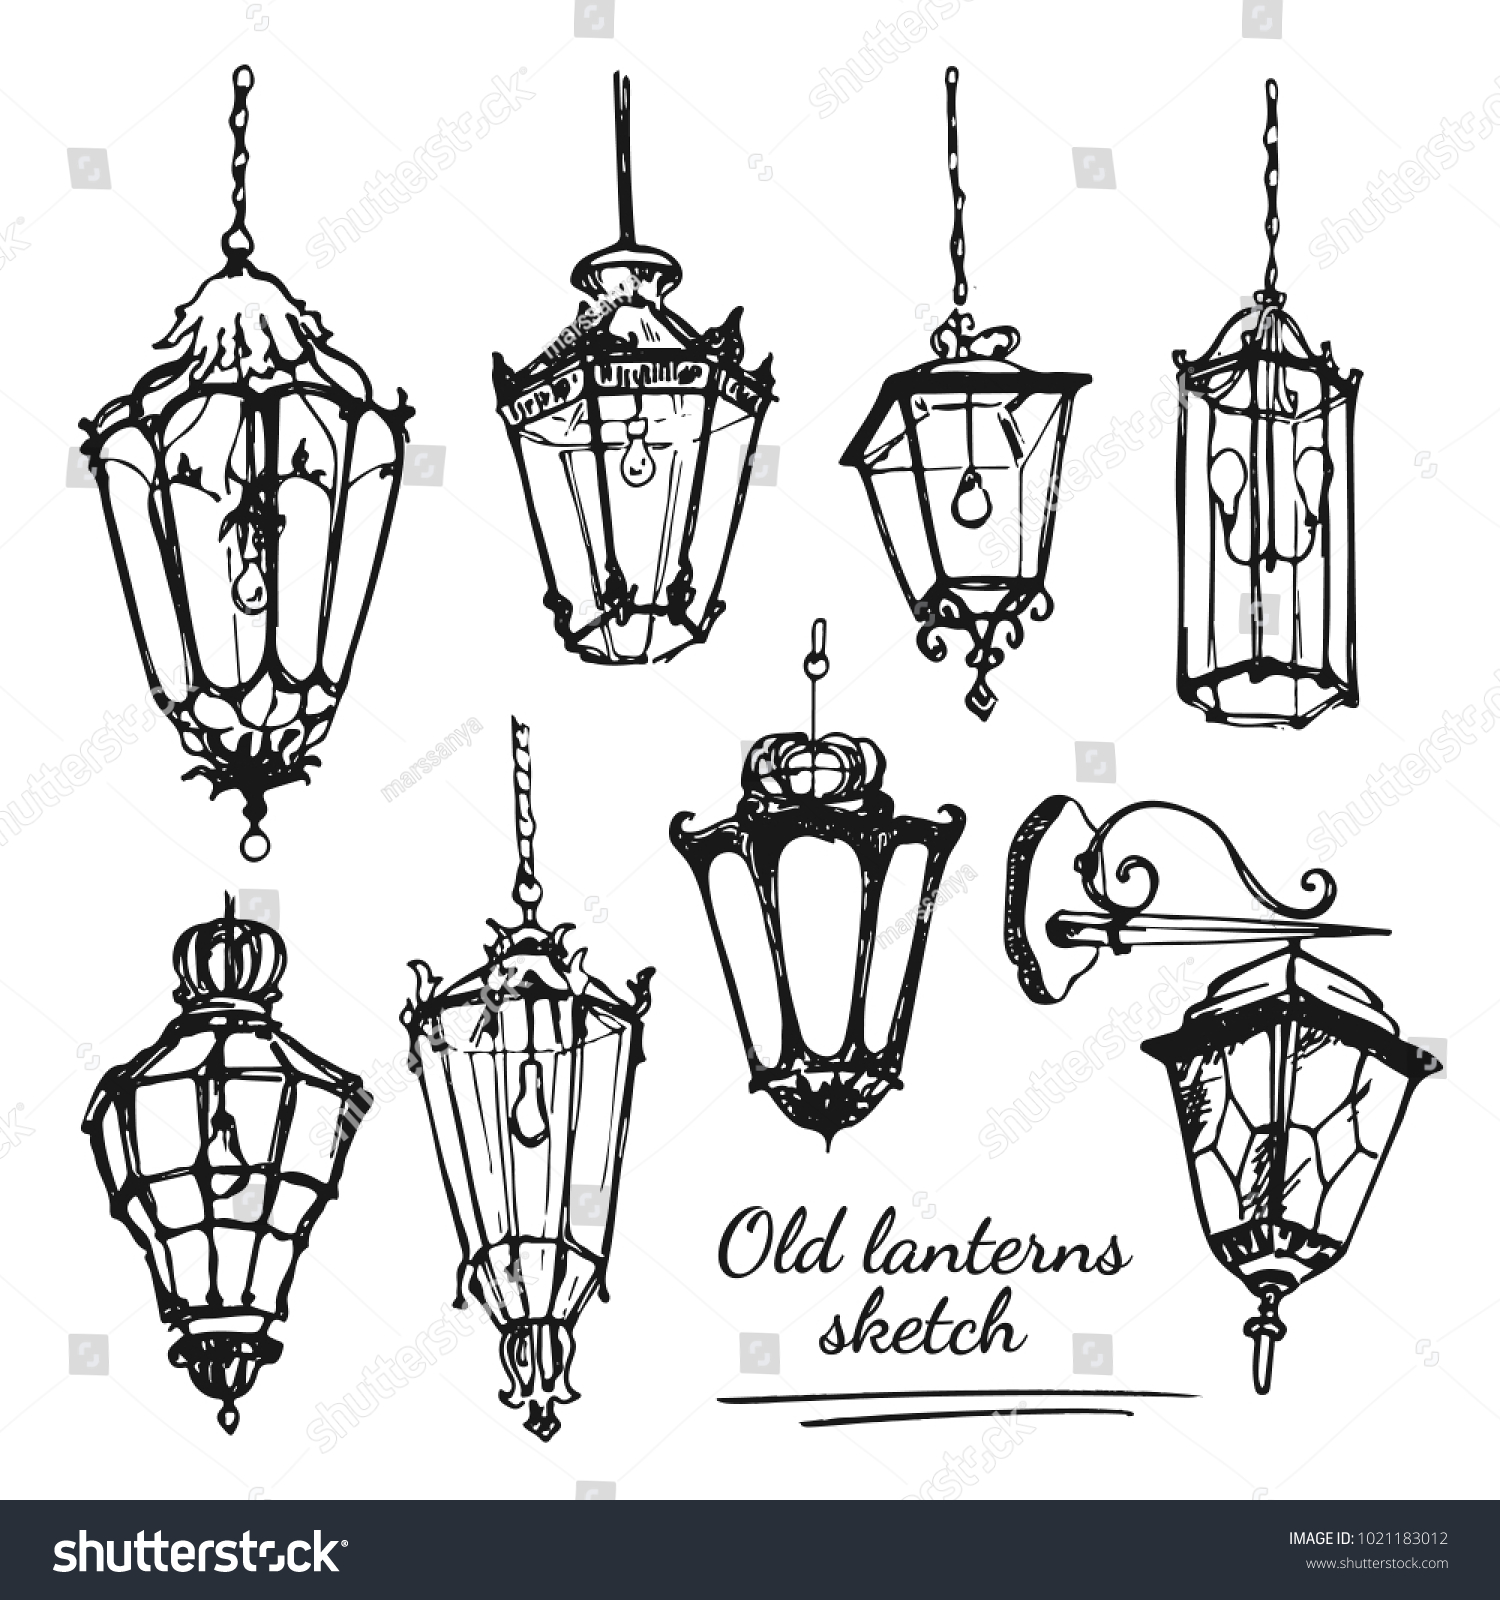 Drawing Old Lanterns On The White Background Sketch Of Different Street Retro Lamps